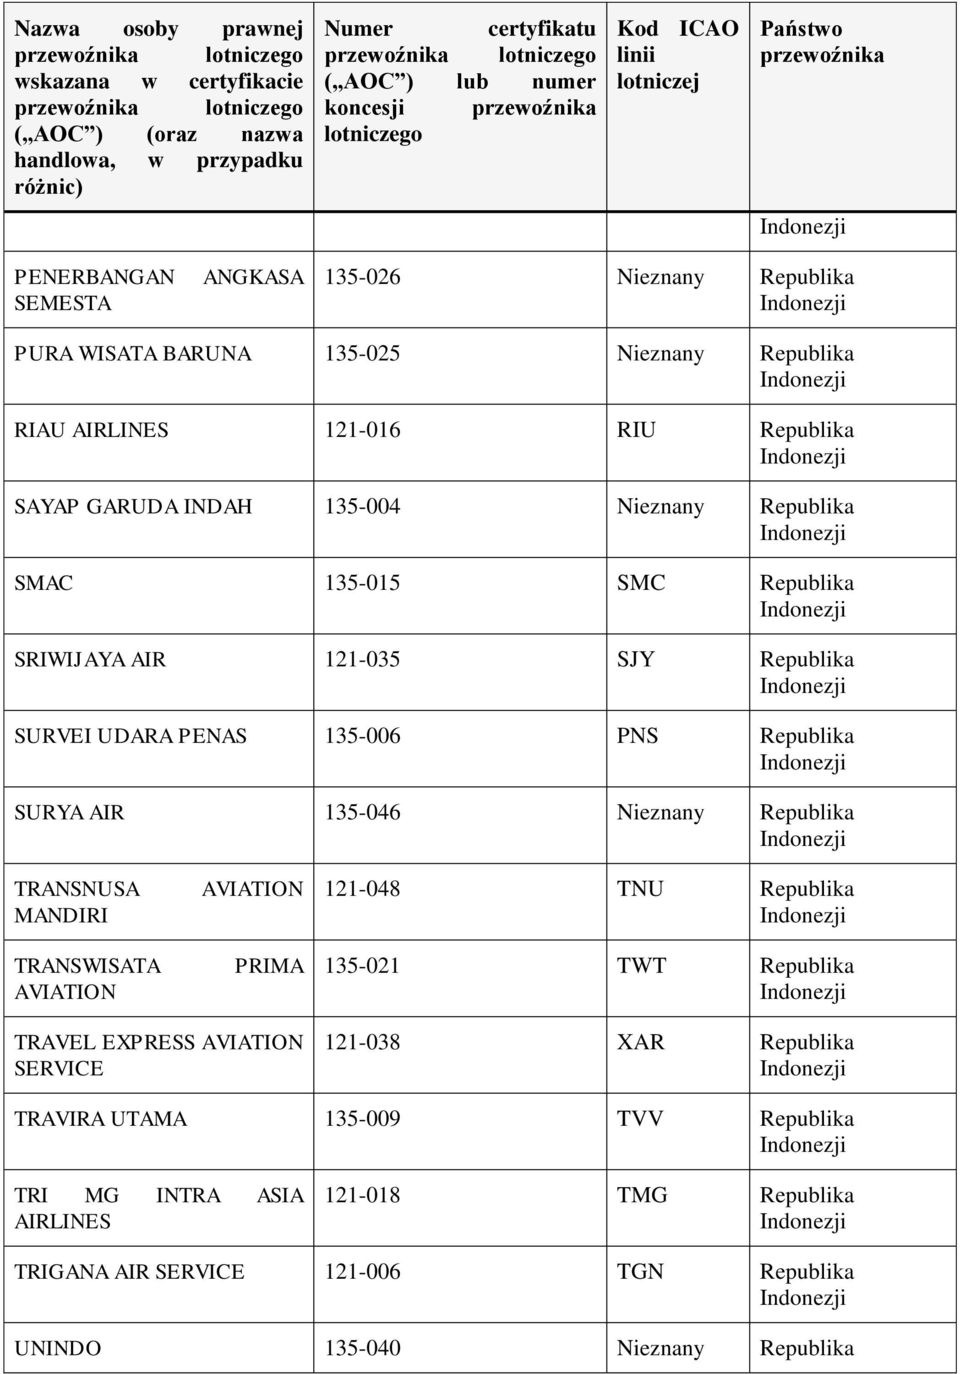 TRANSNUSA MANDIRI TRANSWISATA AVIATION AVIATION PRIMA 121-048 TNU 135-021 TWT TRAVEL EXPRESS AVIATION SERVICE